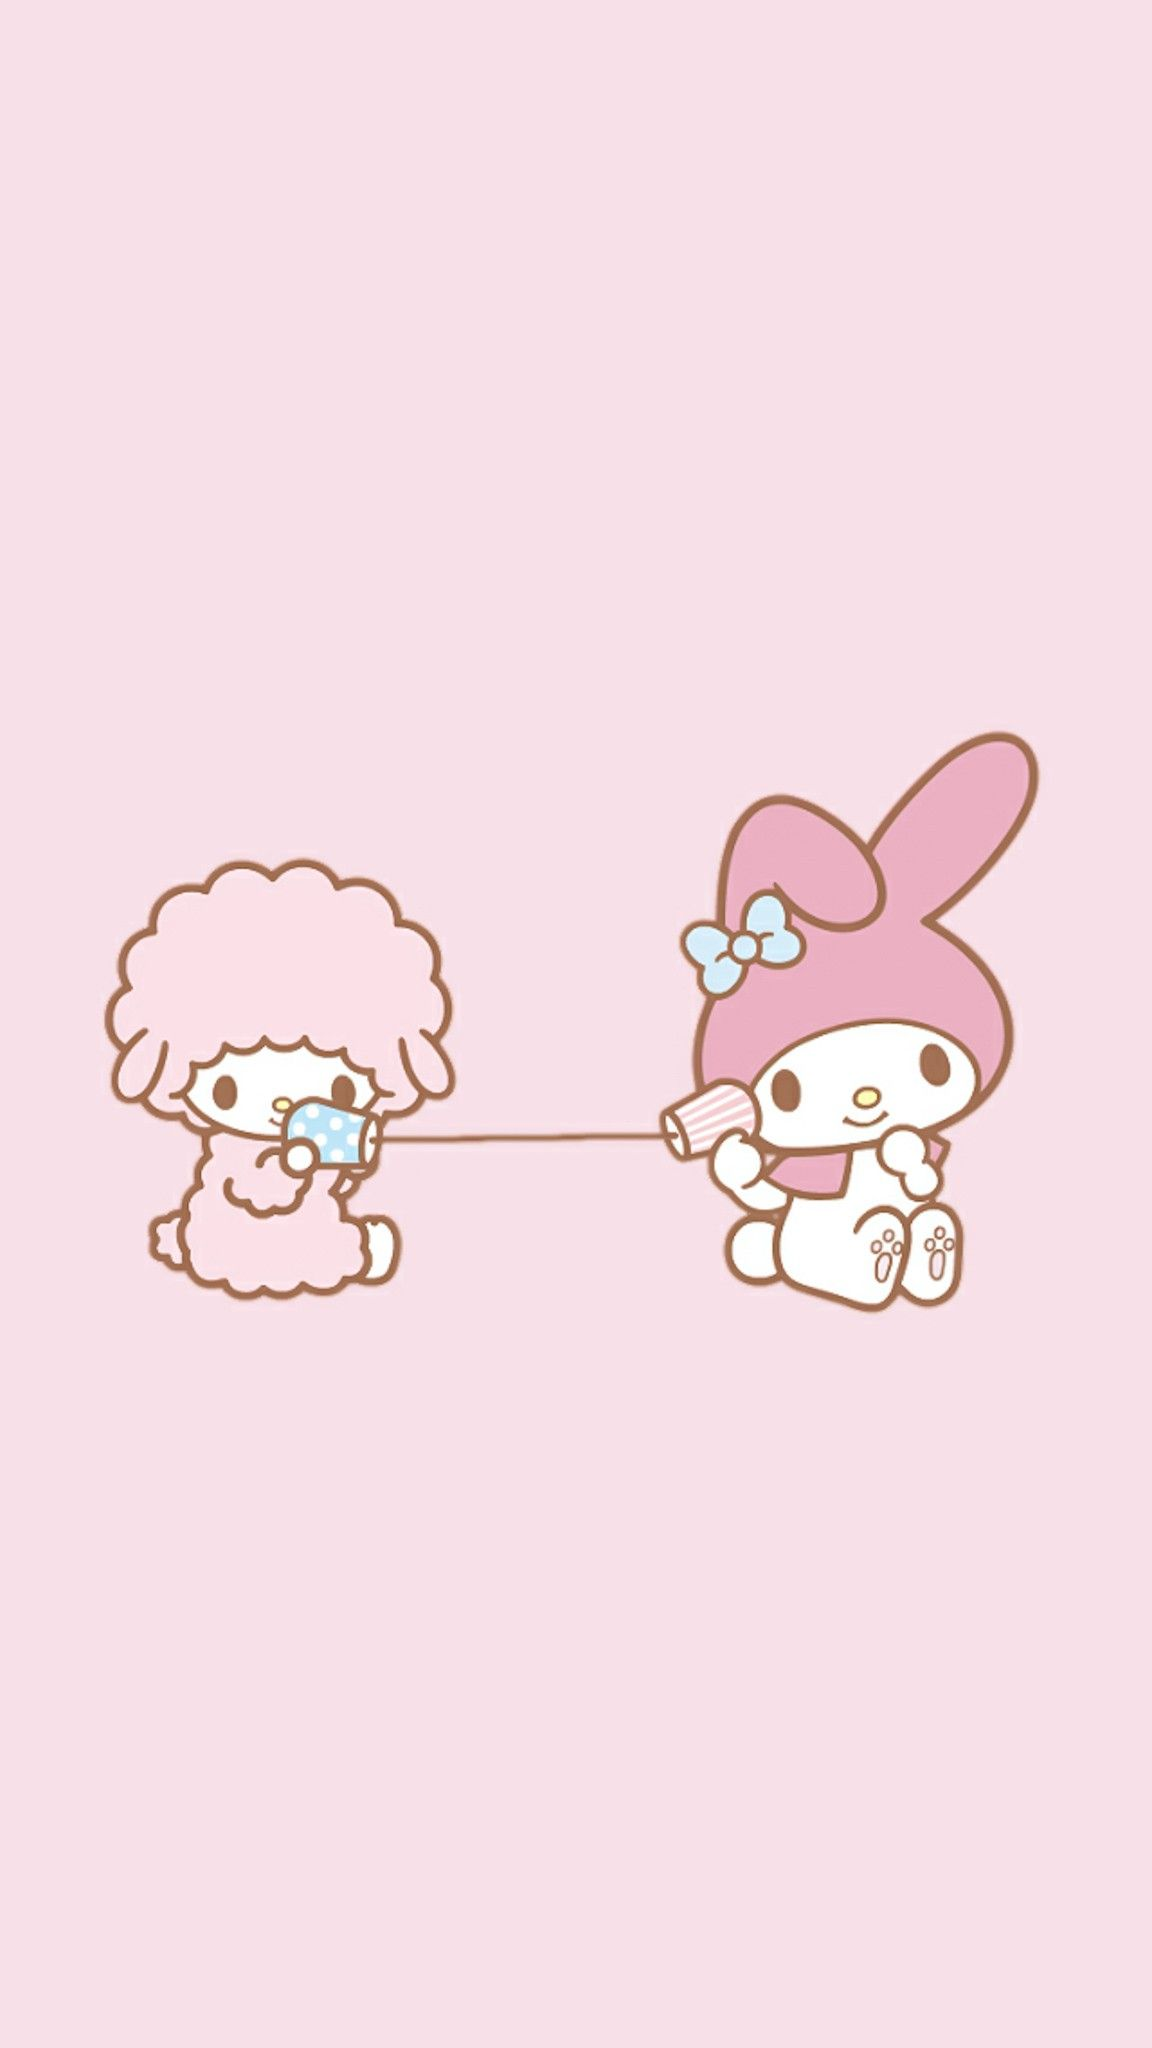 Pin By On My Sweet Piano Melody Hello Kitty My Melody Wallpaper Hello Kitty Wallpaper